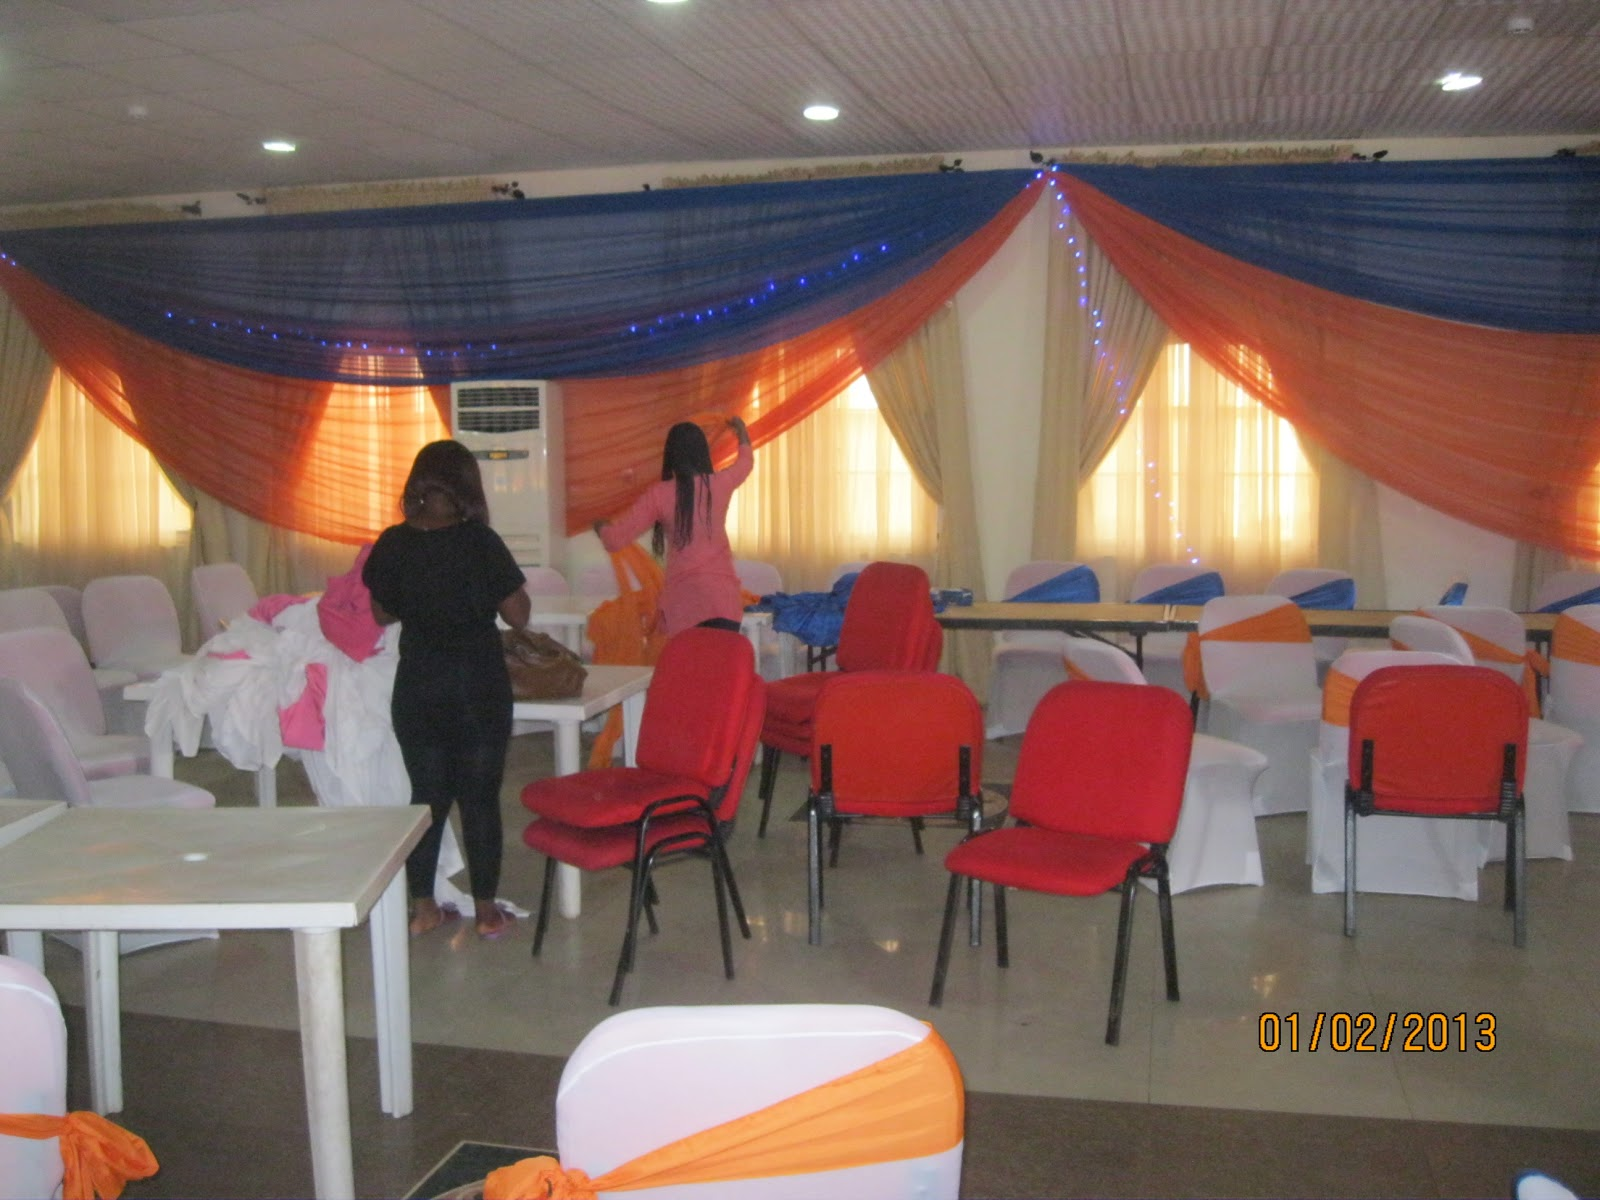 Welcome To Aaa Events Design Event Planning And Decoration Training Fieldwork Practical